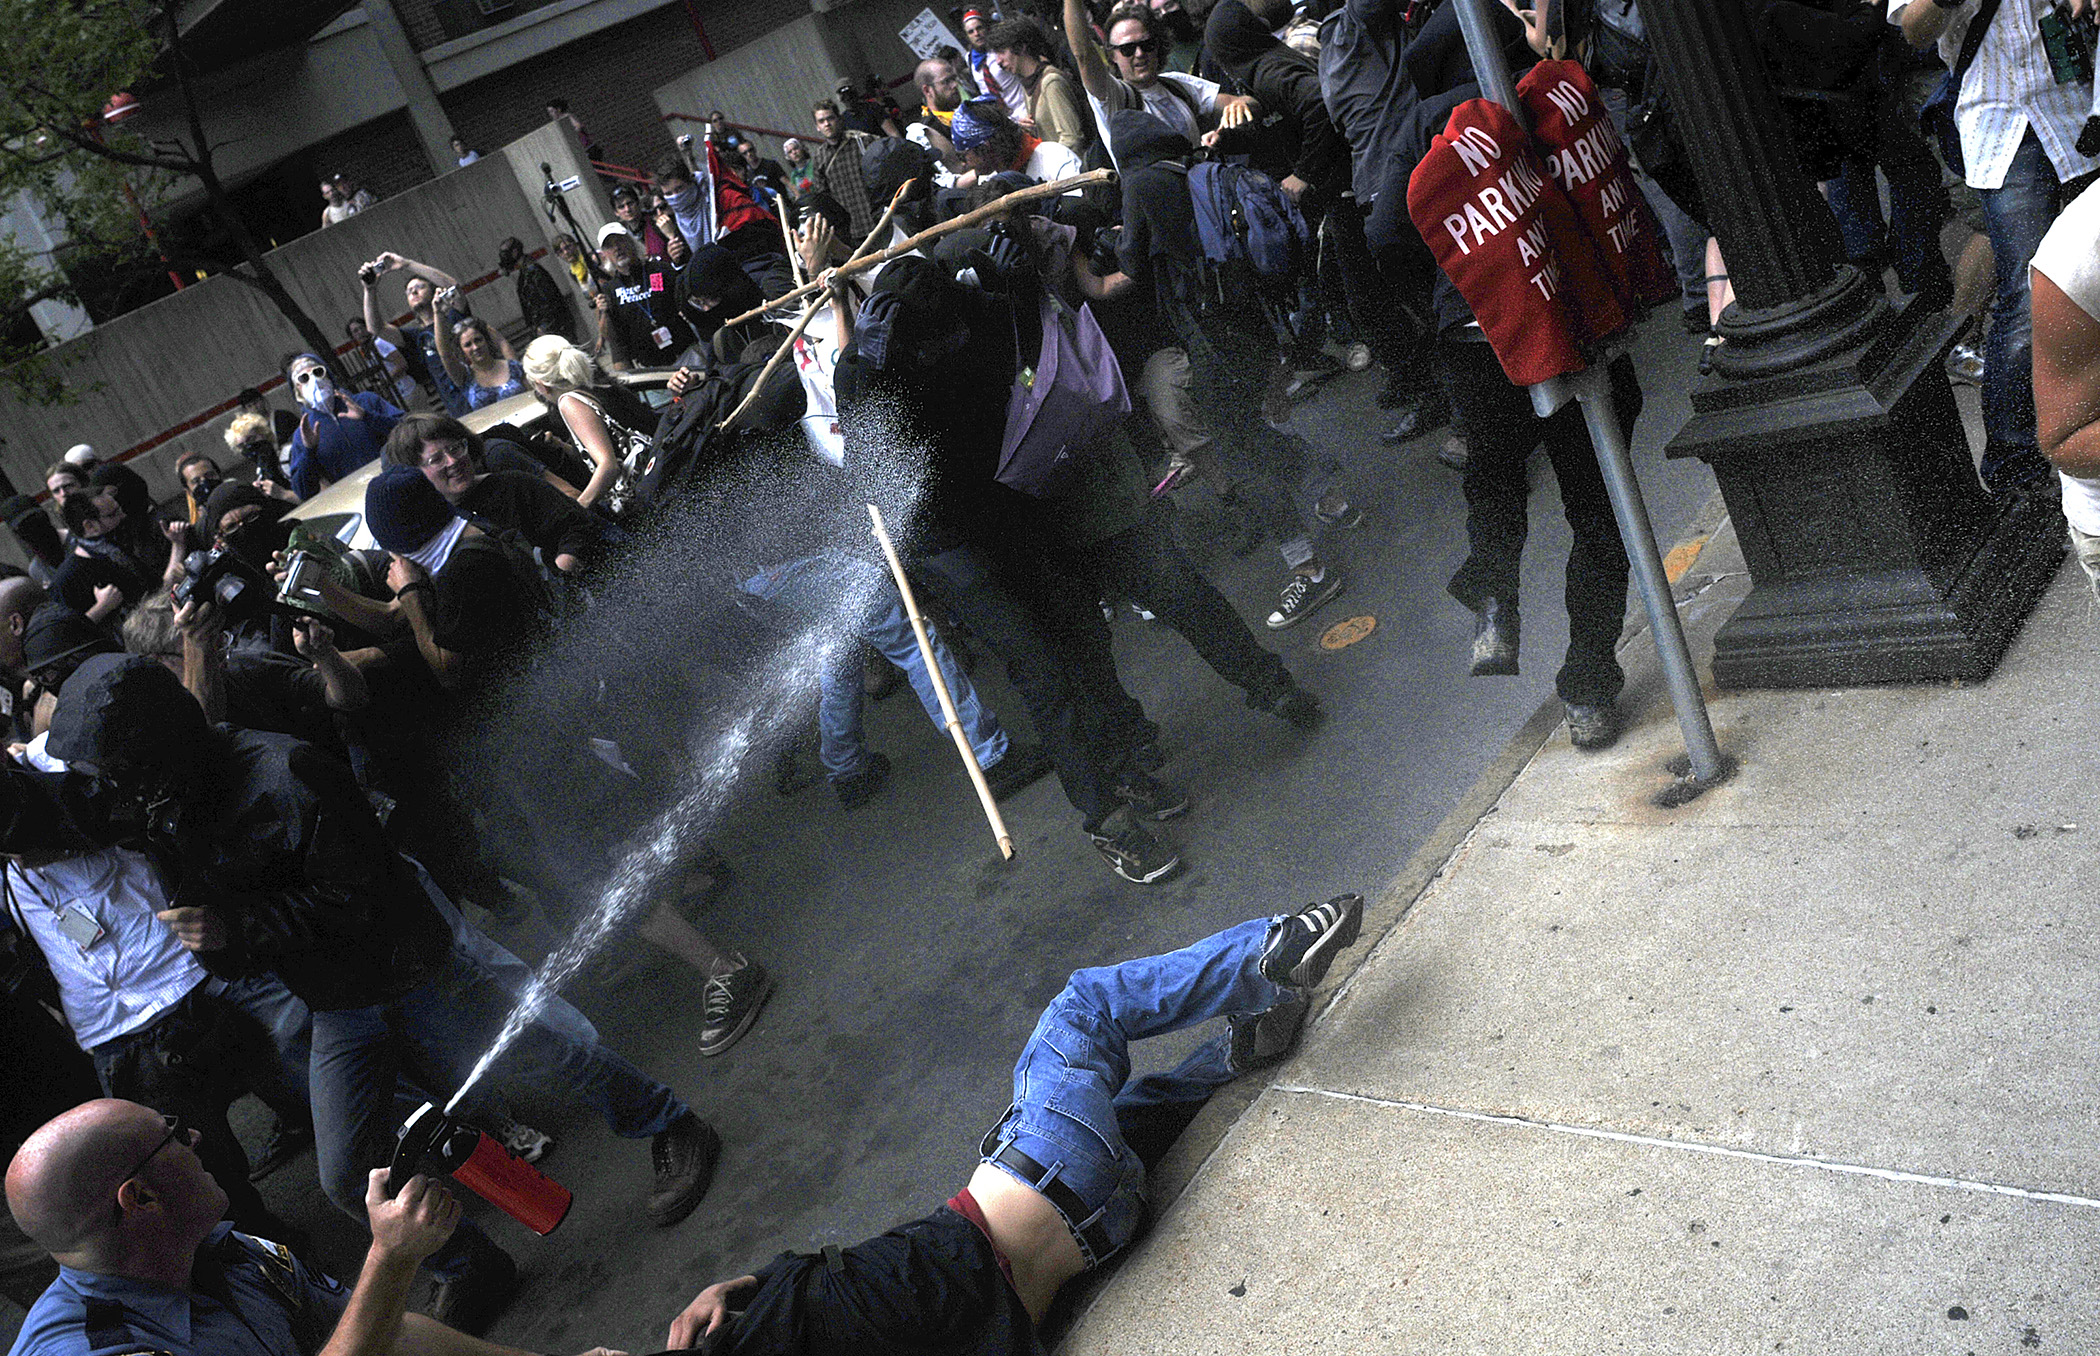 A St. Paul police officer drags a protester to the ground as he pepper sprays the rest of the crowd during the Republican National Convention on September 1, 2008 in St. Paul, MN.